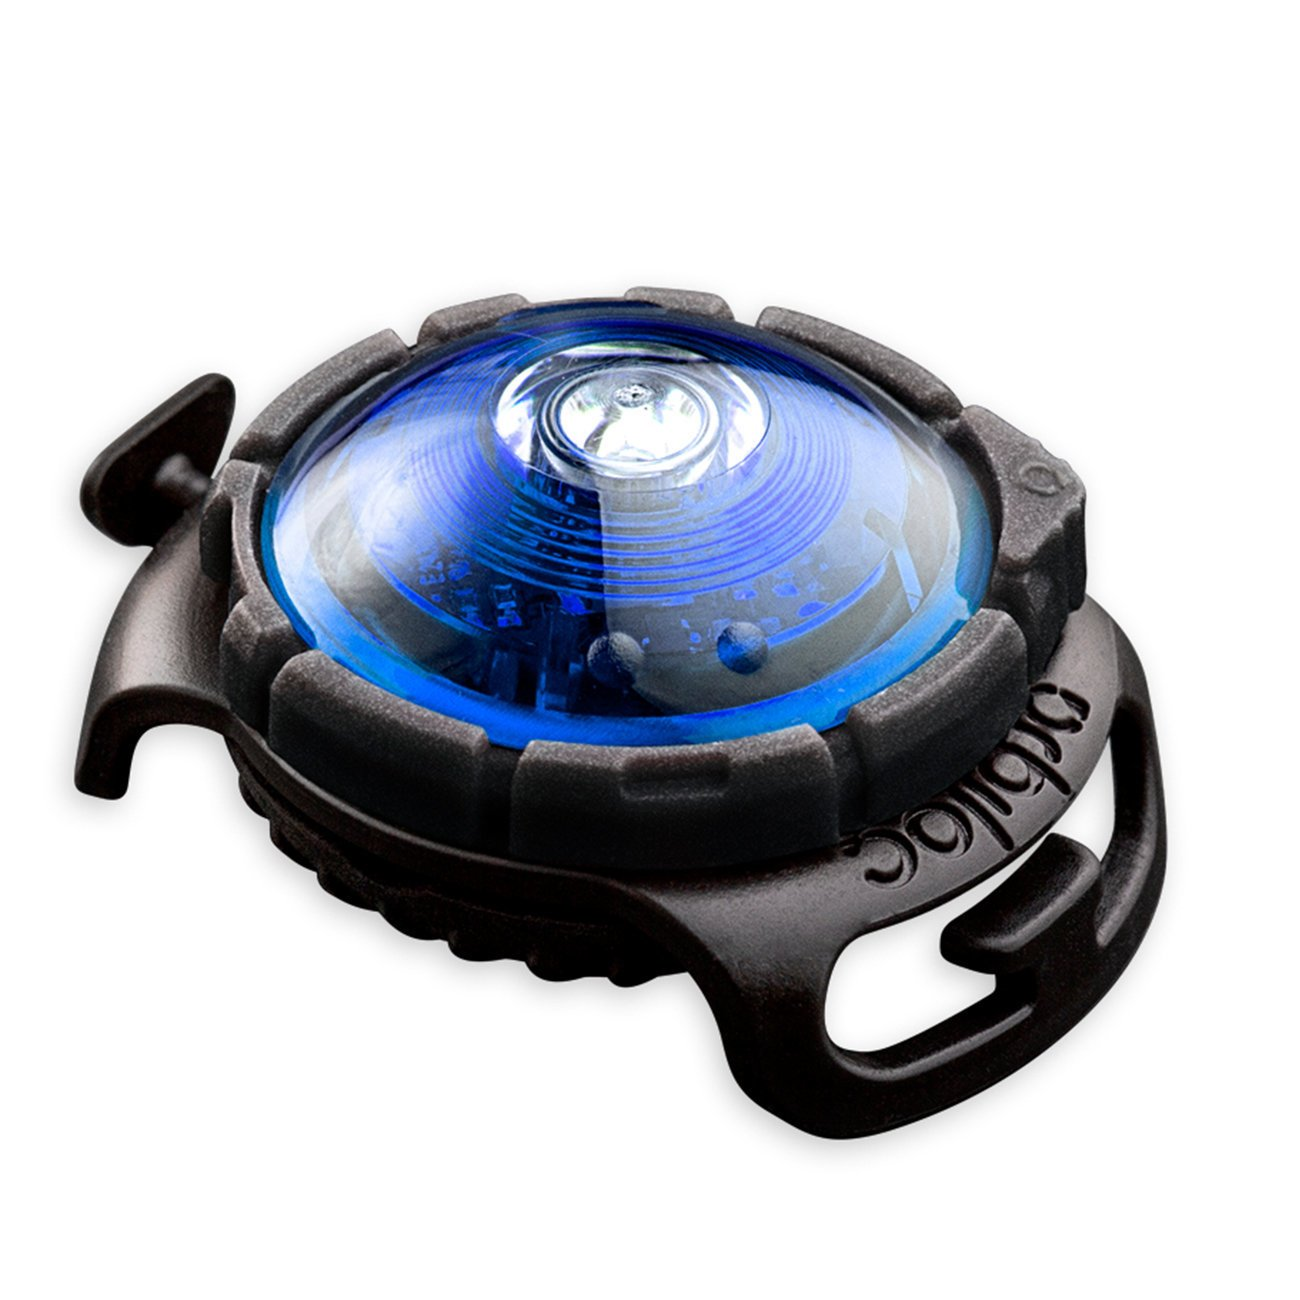 Orbiloc Dog Dual Safety Light Hundelicht, Bild 9